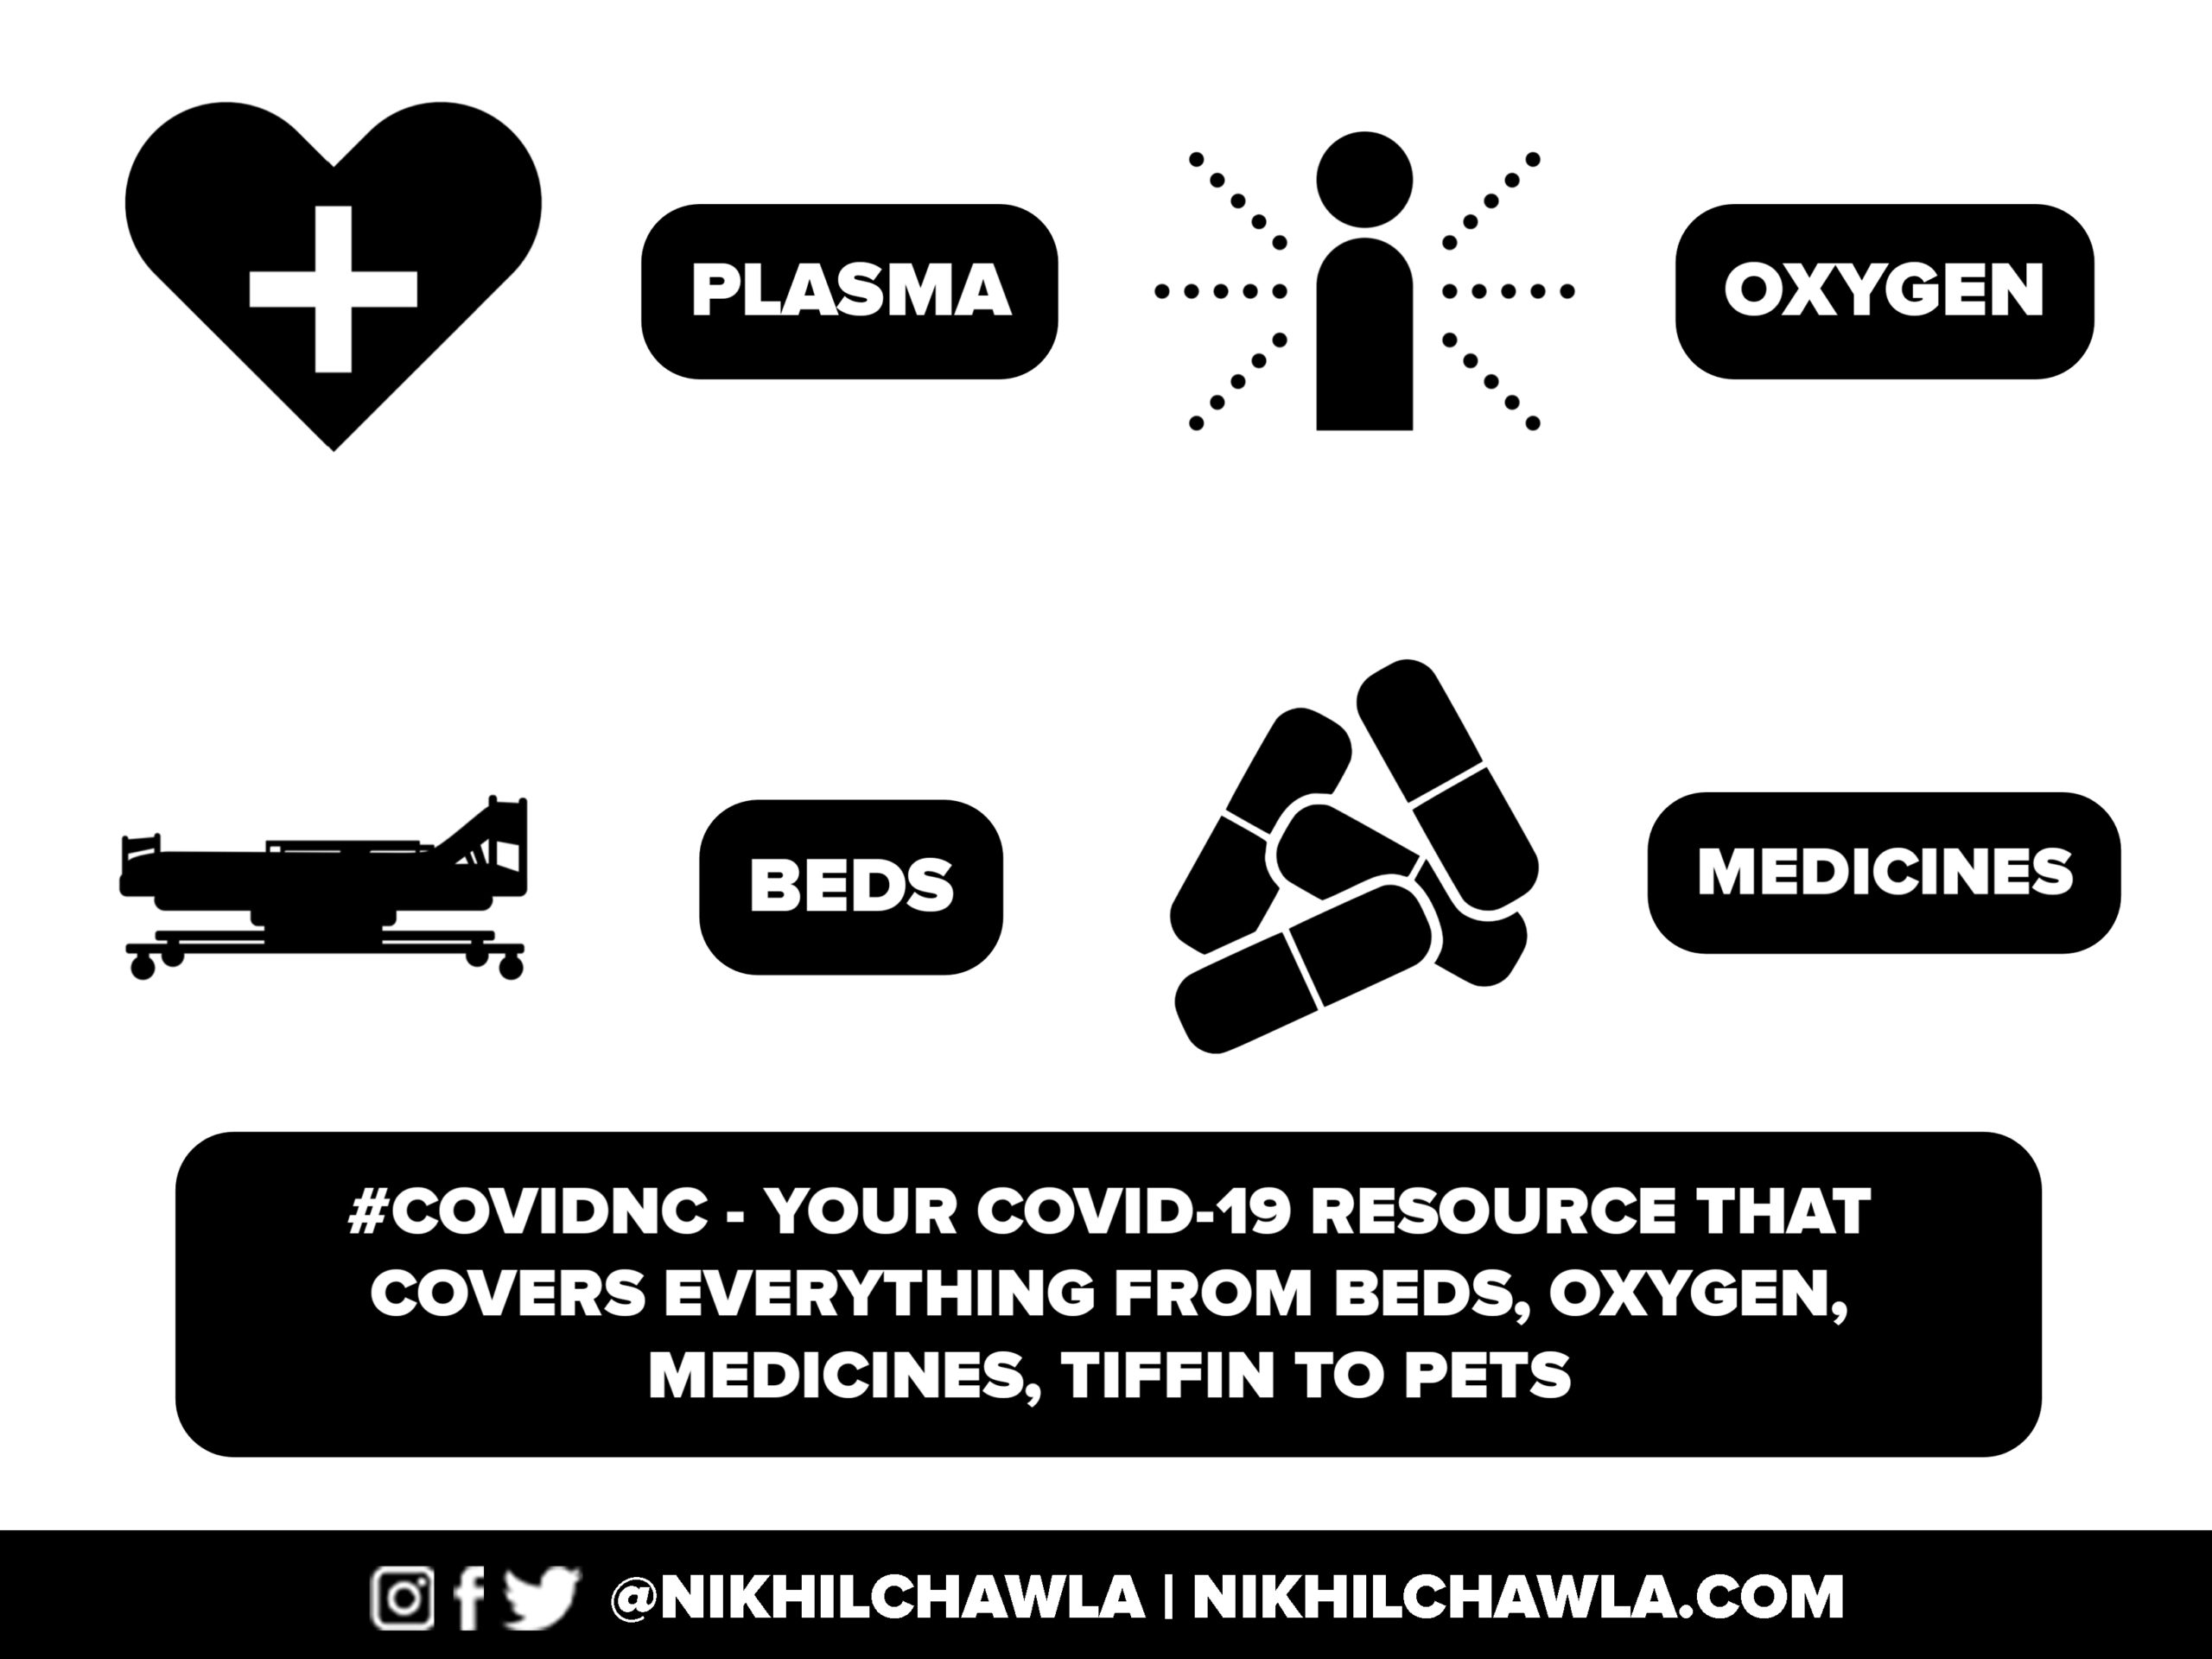 #CovidNC covers everything from Beds, Oxygen, Medicines, Tiffin to Pets.